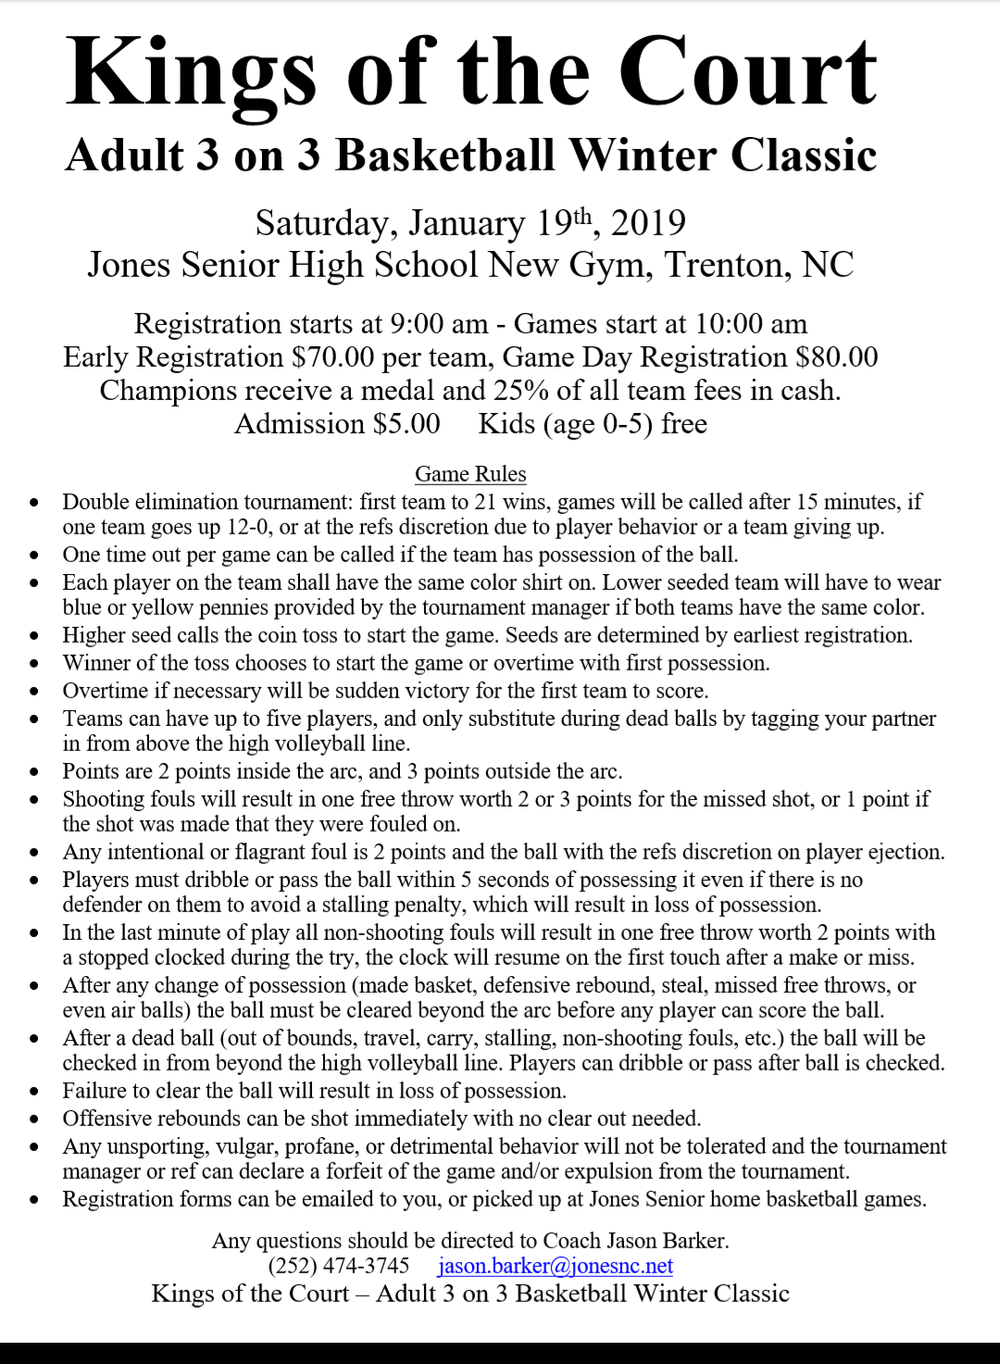 This is the list of rules for the Kings of the Court 3-on-3 basketball tournament, held at Jones Senior Saturday.